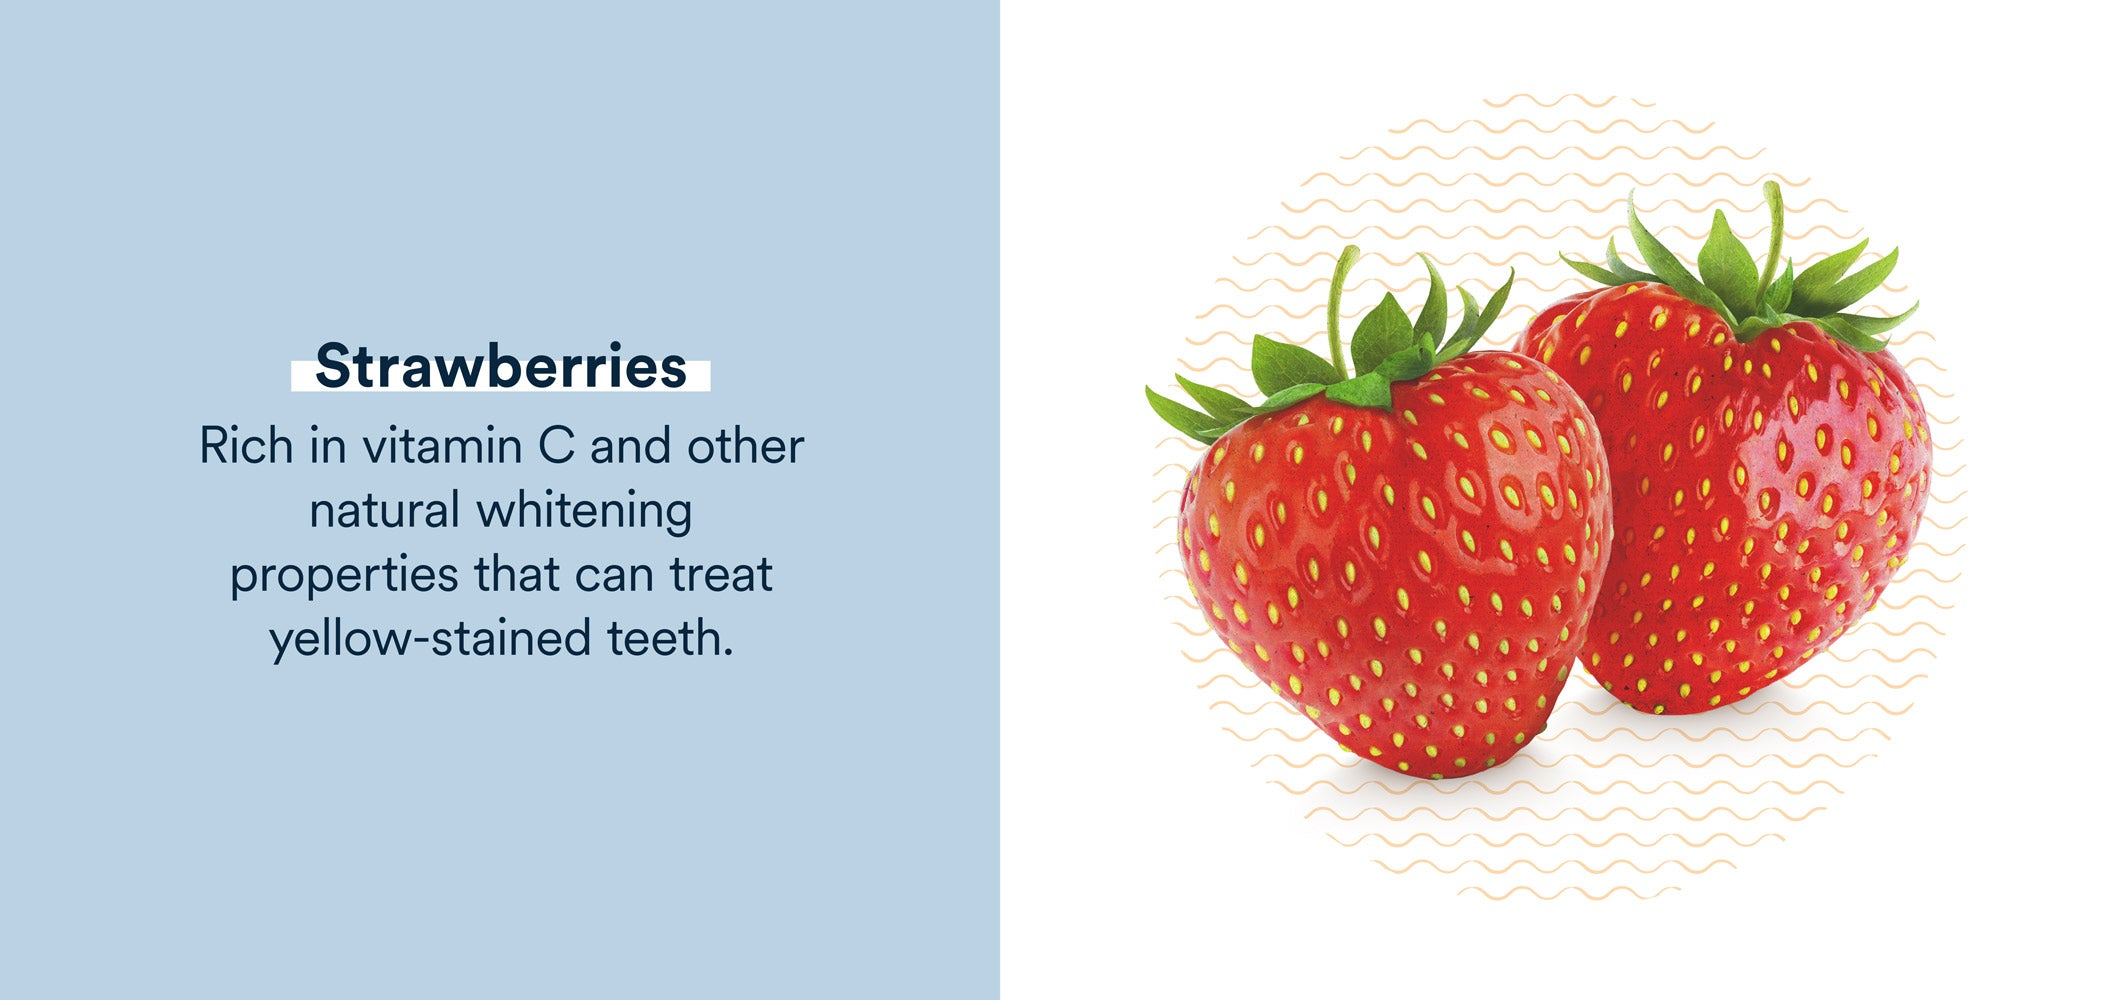 strawberries are rich in vitamin c and other natural whitening properties